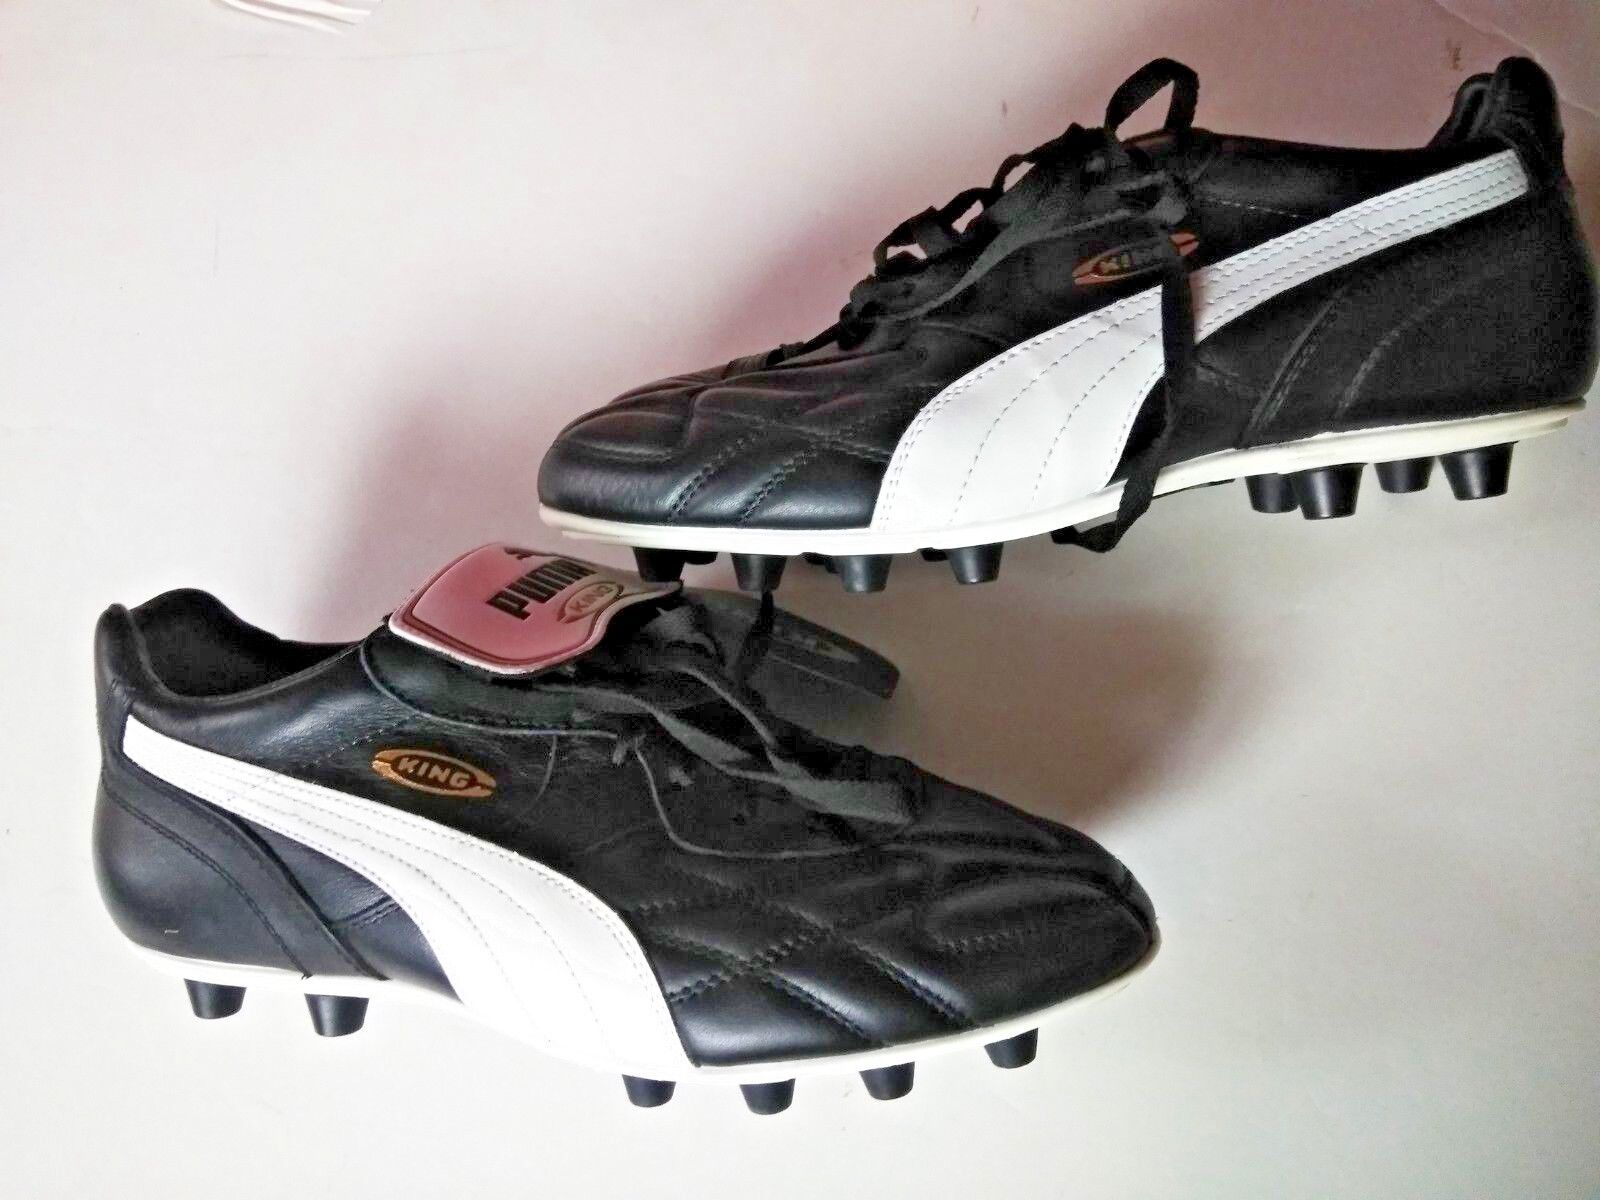 Puma King Top DI shoes Cleats Men's Size 10 Brand NEW